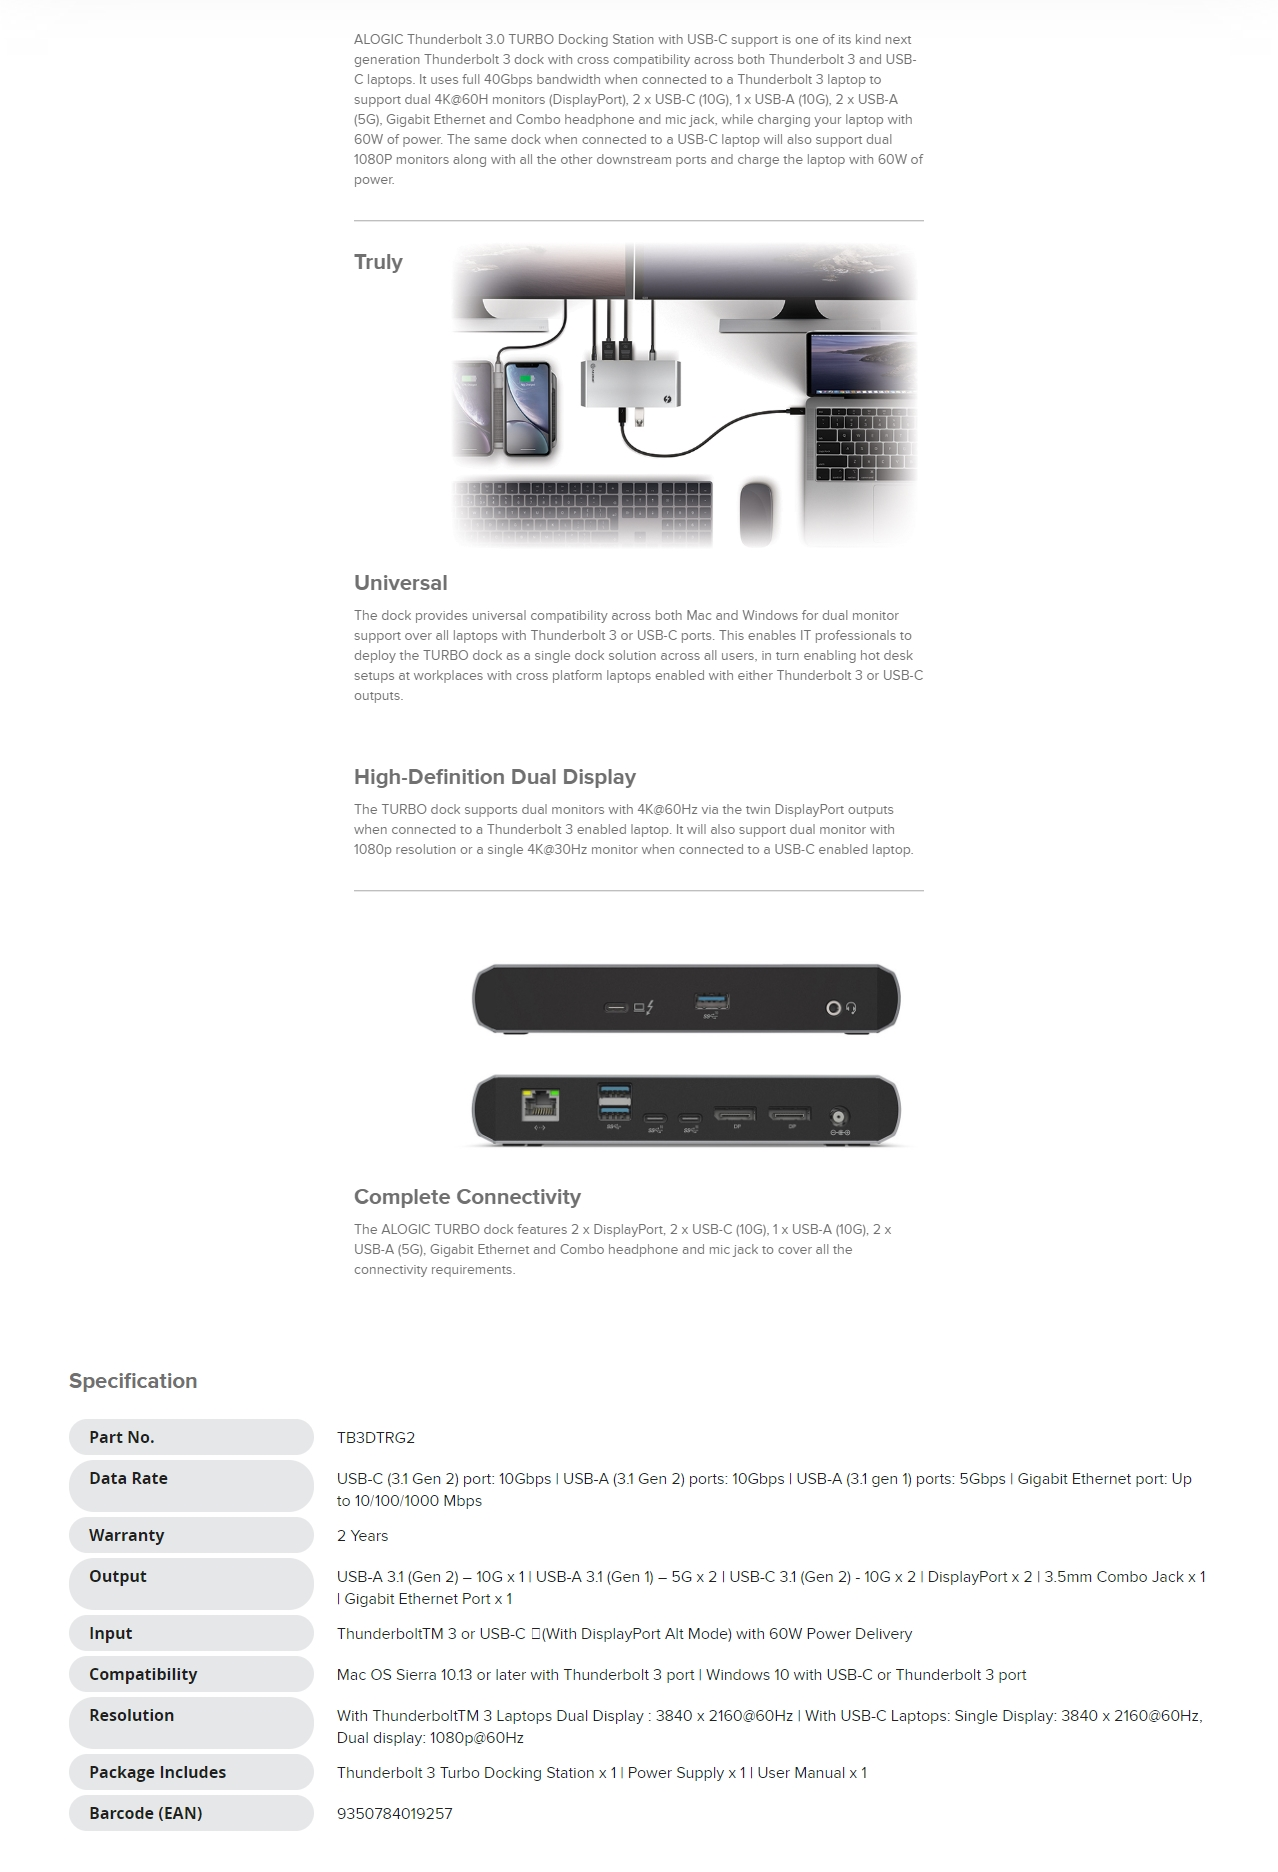 A large marketing image providing additional information about the product ALOGIC Thunderbolt 3.0 TURBO Docking Station with USB Type-C - Additional alt info not provided